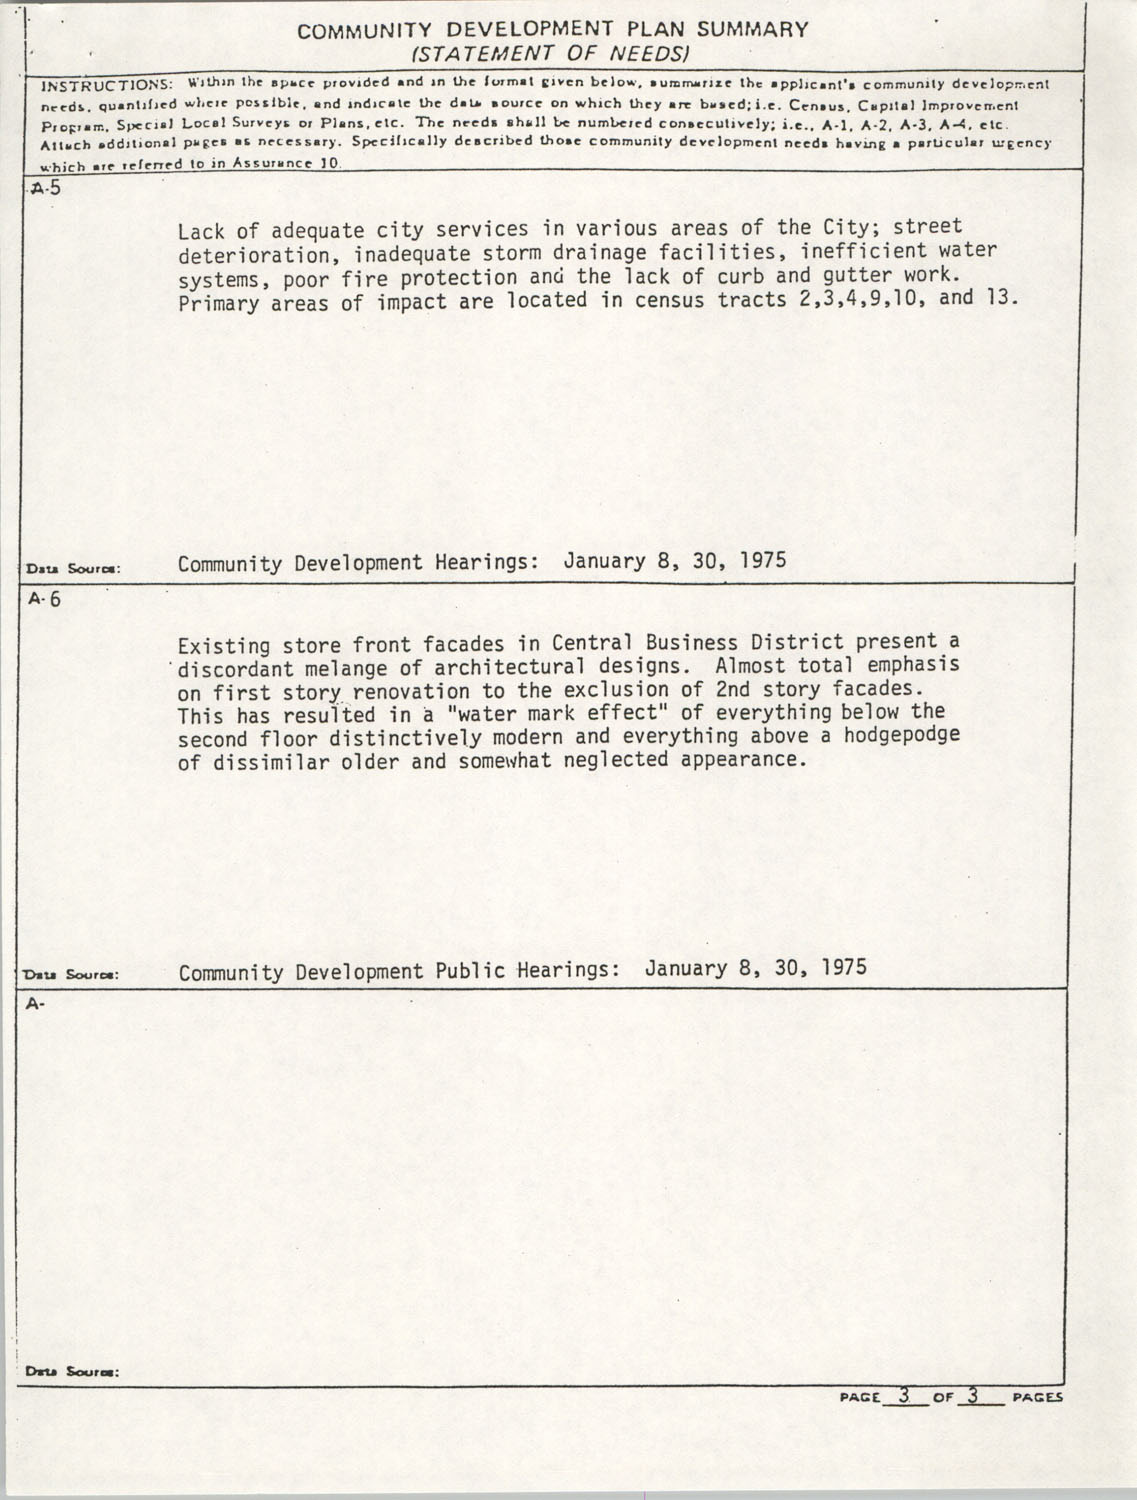 Community Development Act Columbia, South Carolina Materials, South Carolina,  Page 4